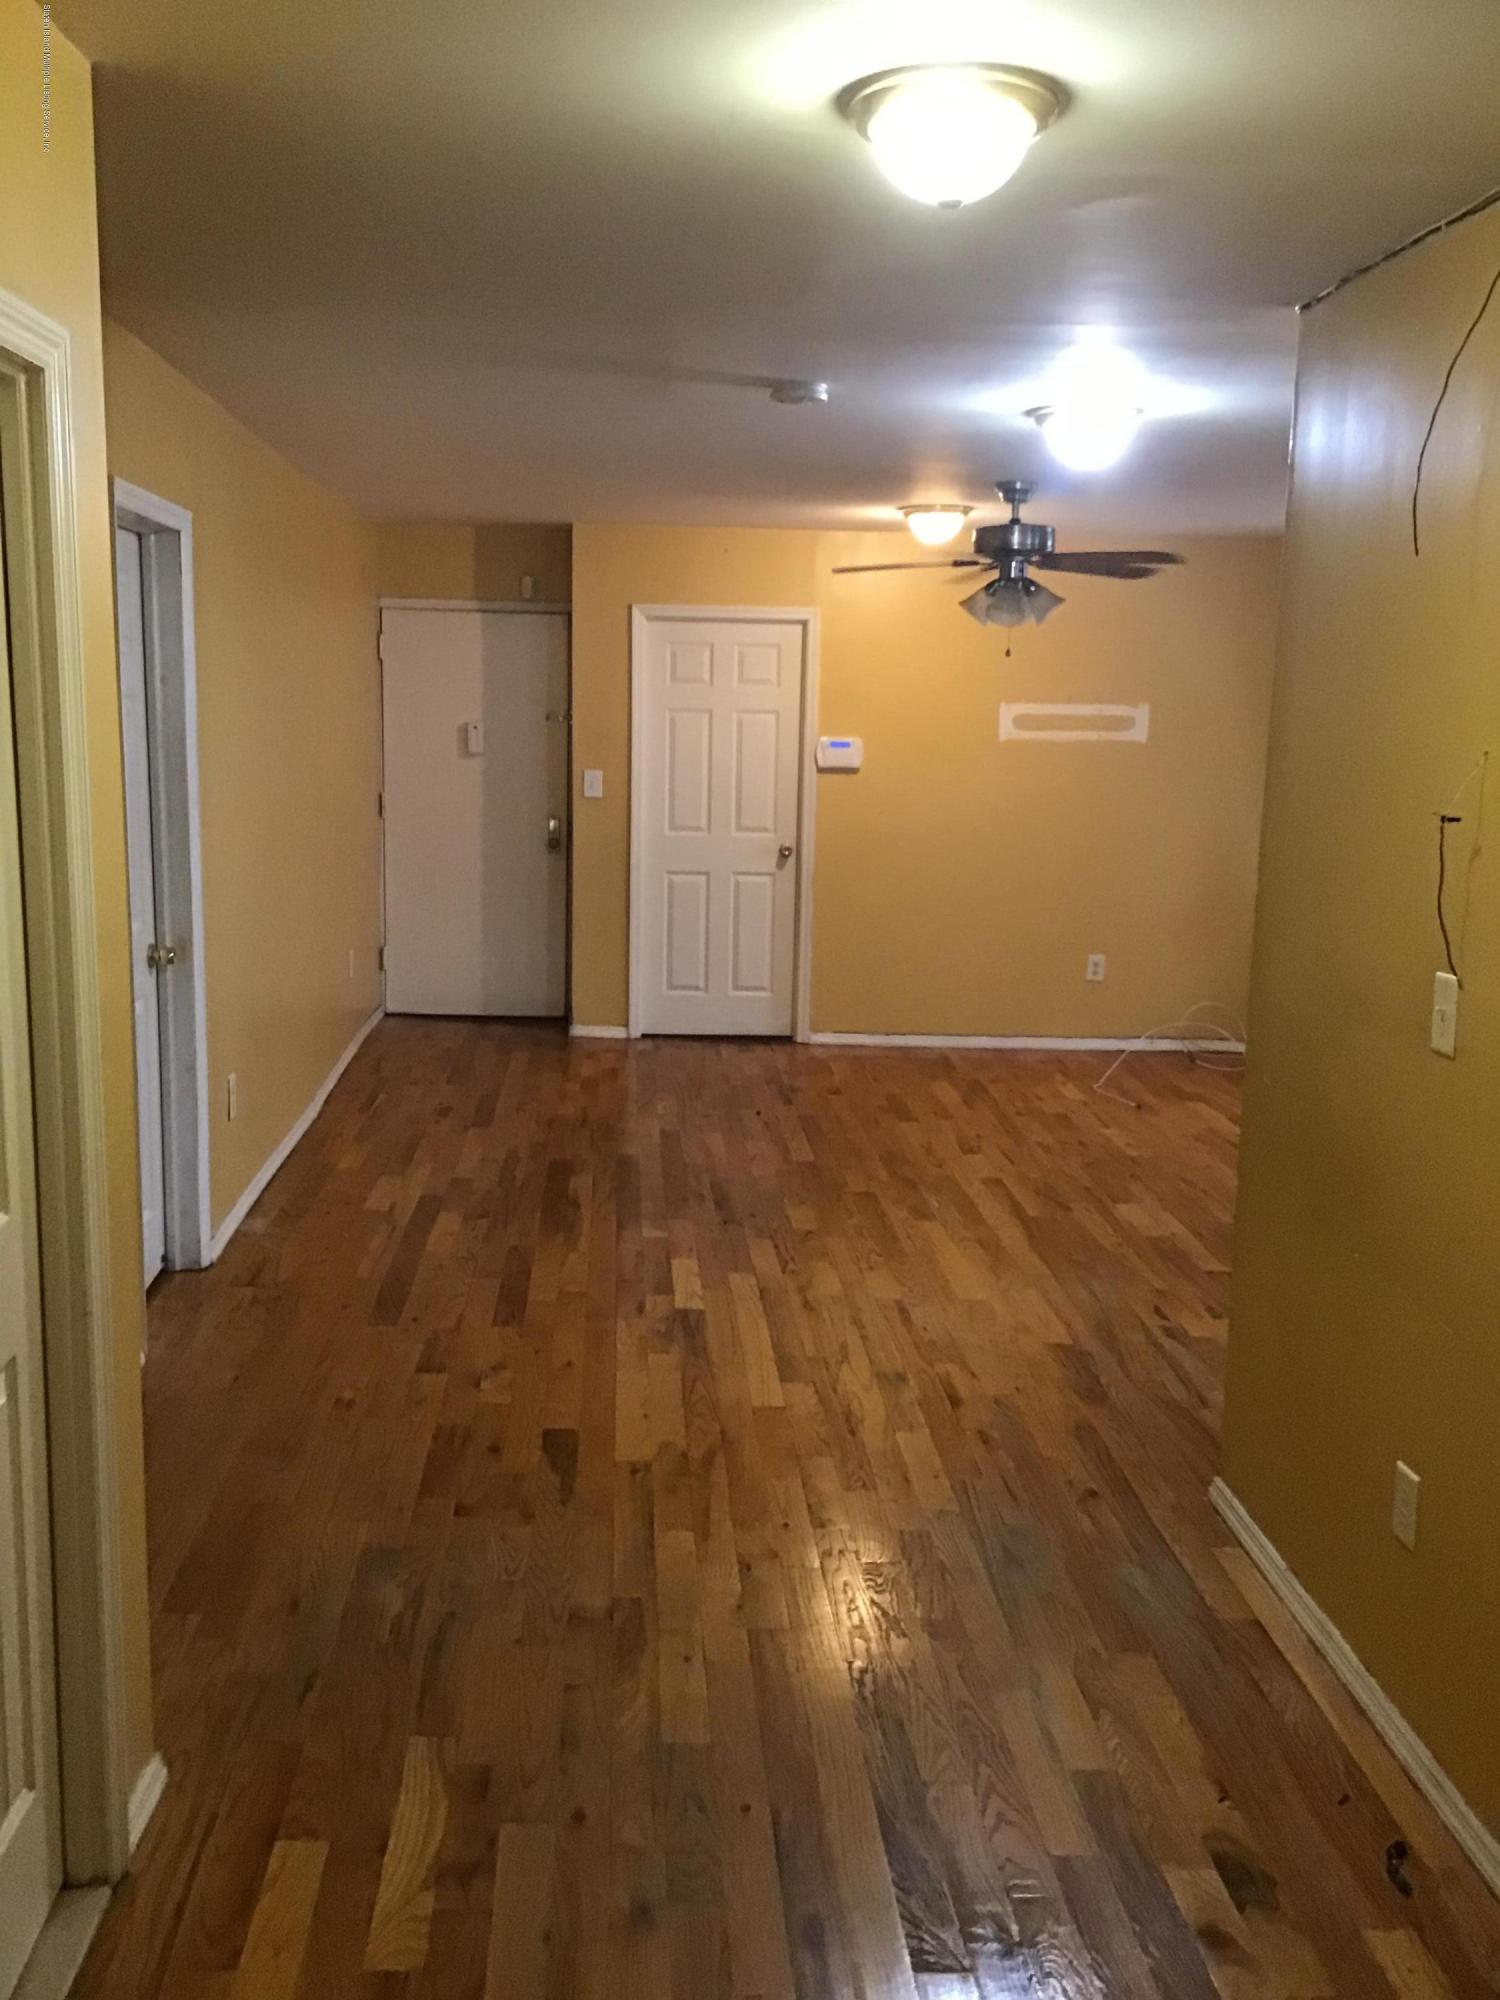 250 93rd Street,Brooklyn,New York,11212,United States,3 Bedrooms Bedrooms,6 Rooms Rooms,2 BathroomsBathrooms,Res-Rental,93rd,1130844